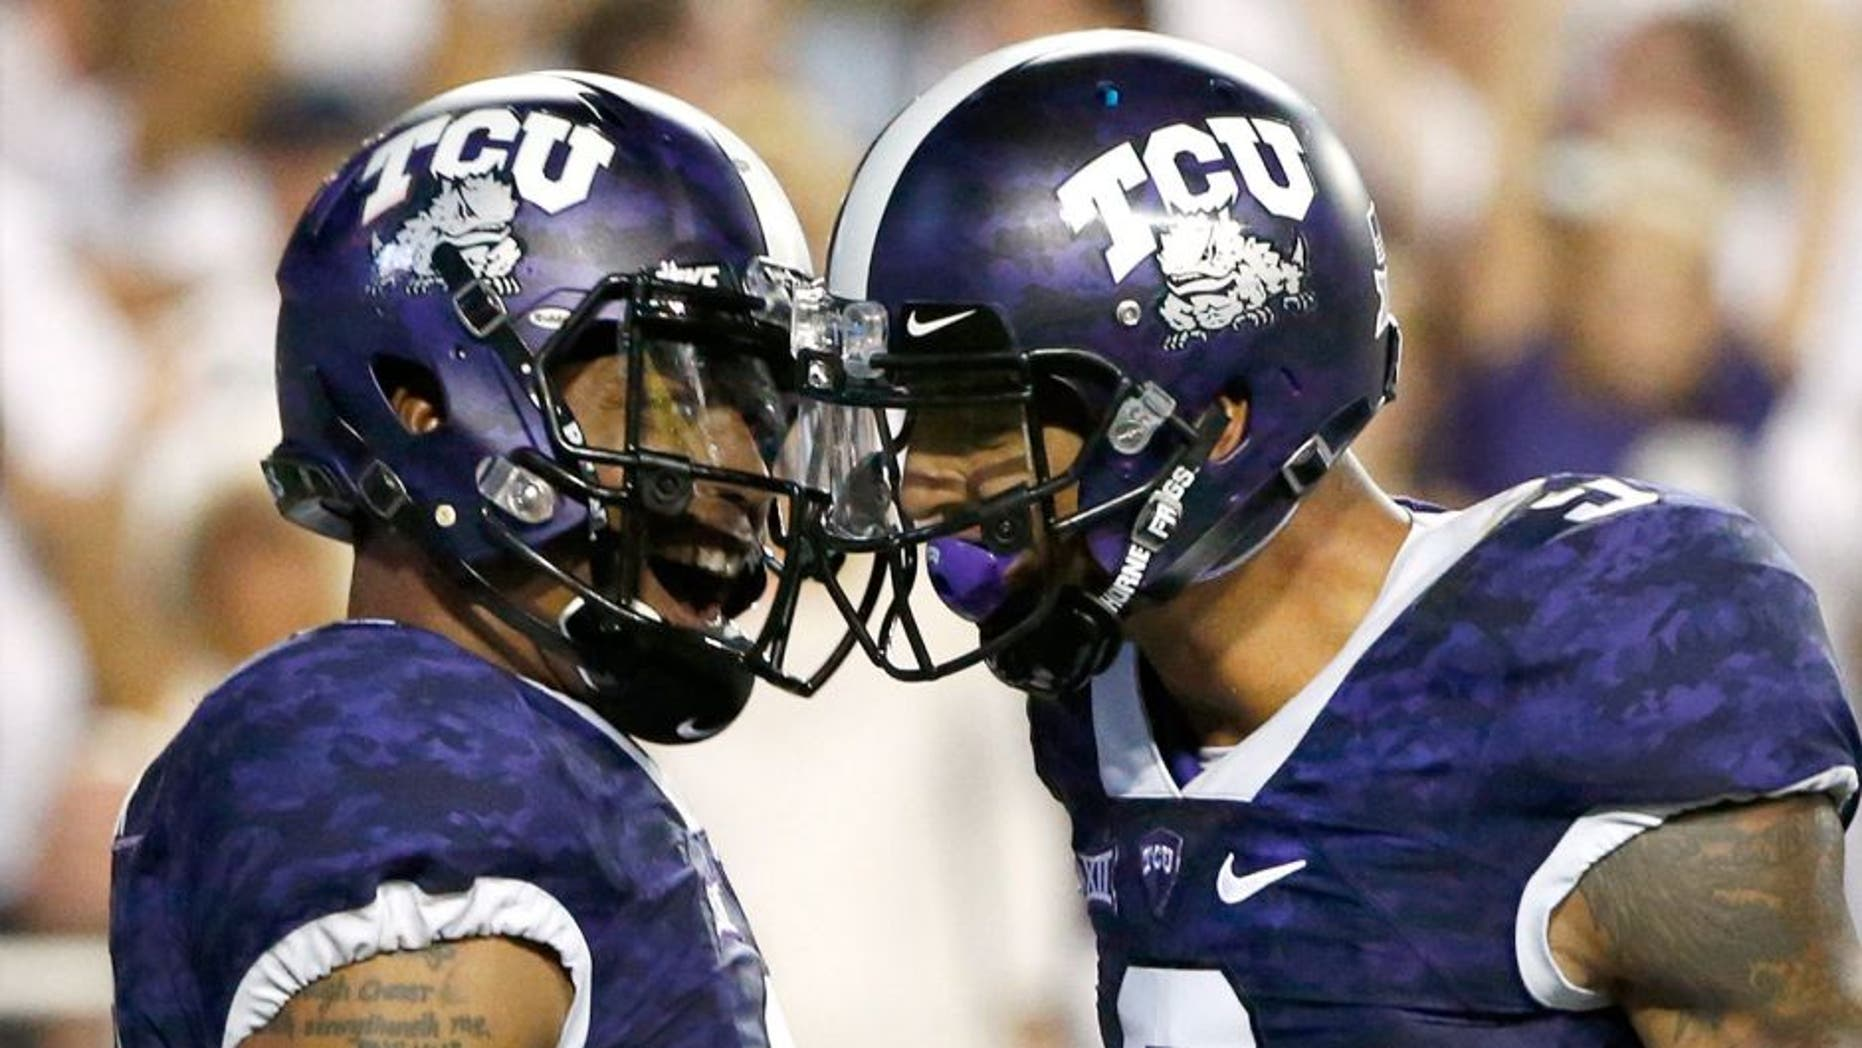 FORT WORTH, TX - SEPTEMBER 19: (L-R) Trevone Boykin #2 of the TCU Horned Frogs celebrates with teammate Josh Doctson #9 after Boykin scored on a touchdown run in the second quarter against the Southern Methodist Mustangs at Amon G. Carter Stadium on September 19, 2015 in Fort Worth, Texas. (Photo by Ron Jenkins/Getty Images)